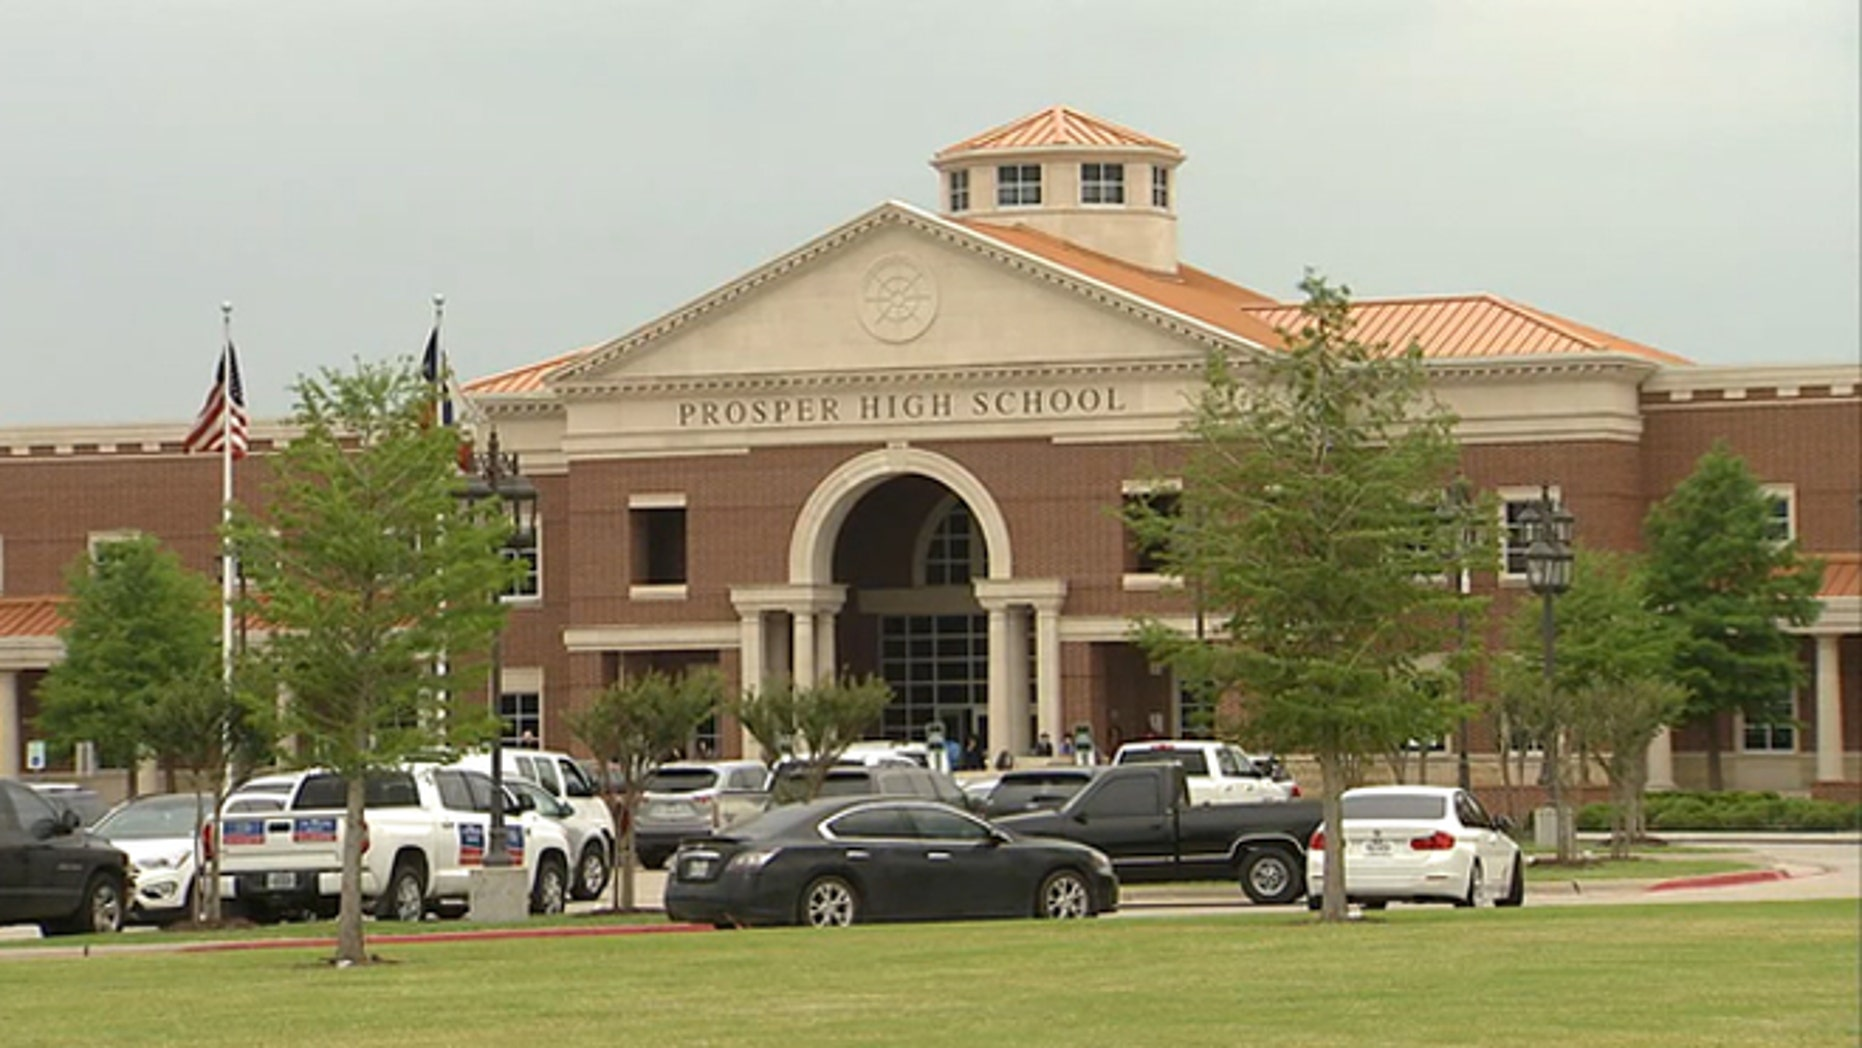 Students will now have to pass a breathalyzer test to get into Saturday's prom at Prosper High School.